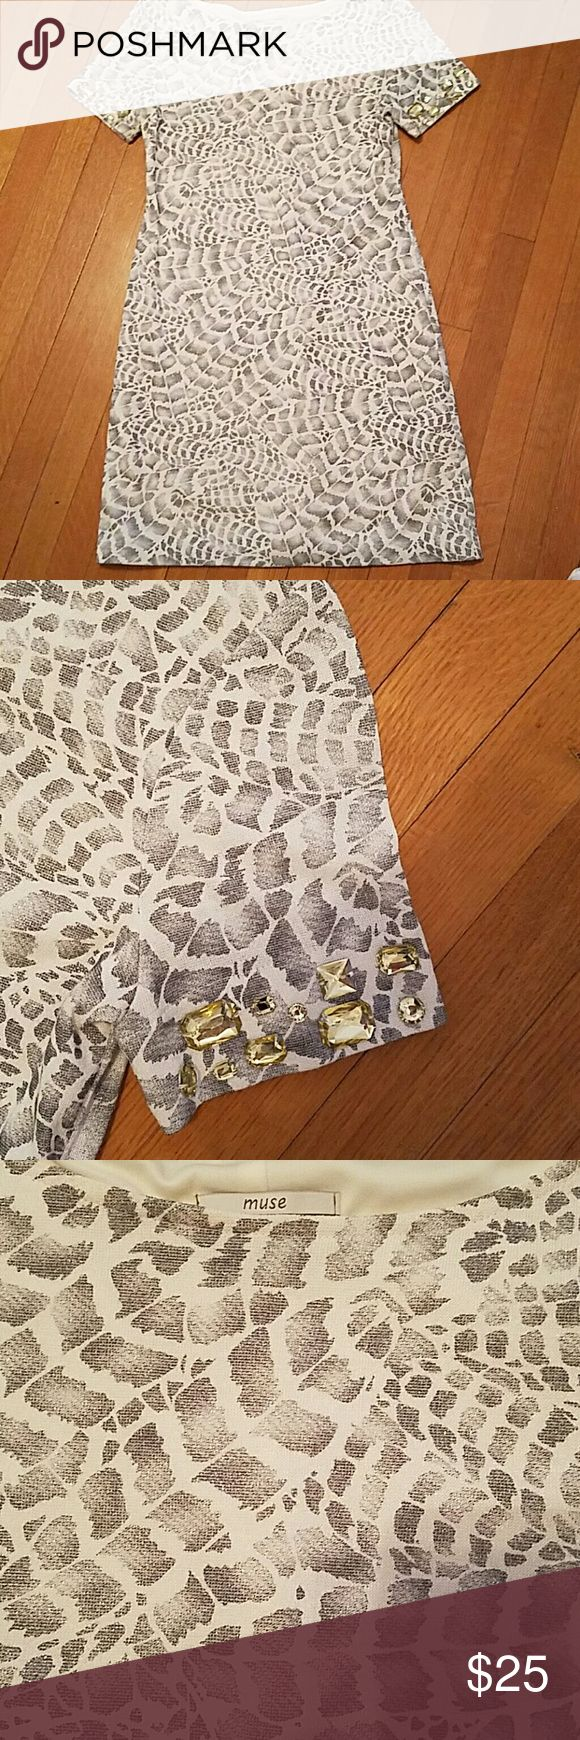 Shorts sleeve embellished knit shift dress Short sleeve animal print knit dress. 95% polyester 5% spandex with assorted size crystals on sleeves. 33 inches from shoulder to hem. Print has subtle shimmer. muse Dresses Mini